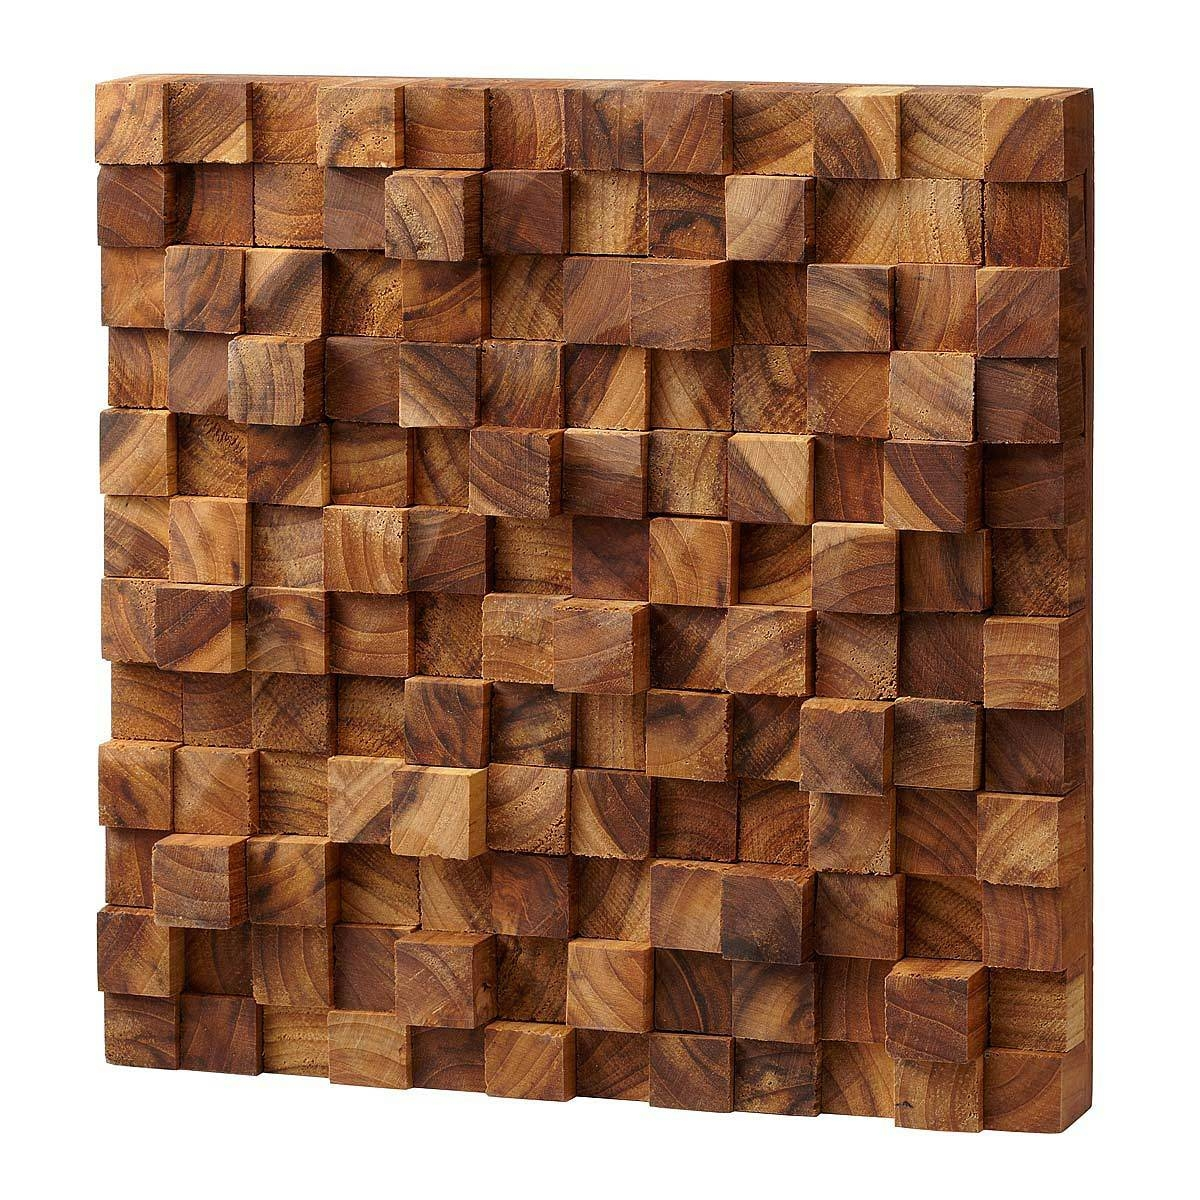 Square Takara Wall Art | Teak Wood, 3D Art | Uncommongoods Throughout Newest Wall Art On Wood (View 9 of 20)